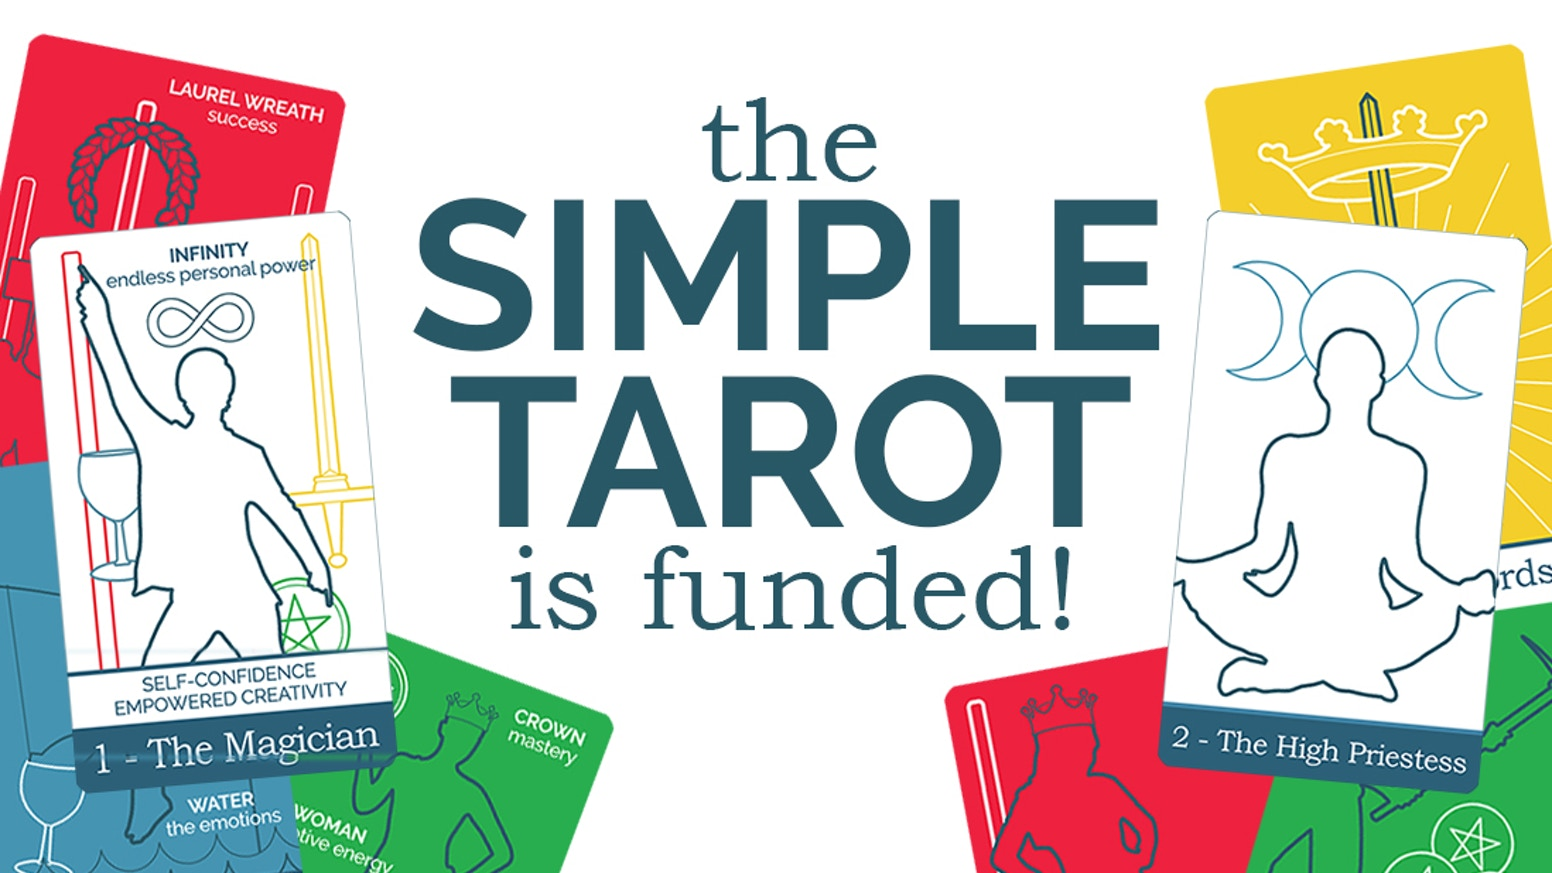 78 minimal and modern tarot cards designed to make learning and using the tarot simple, easy, and fun